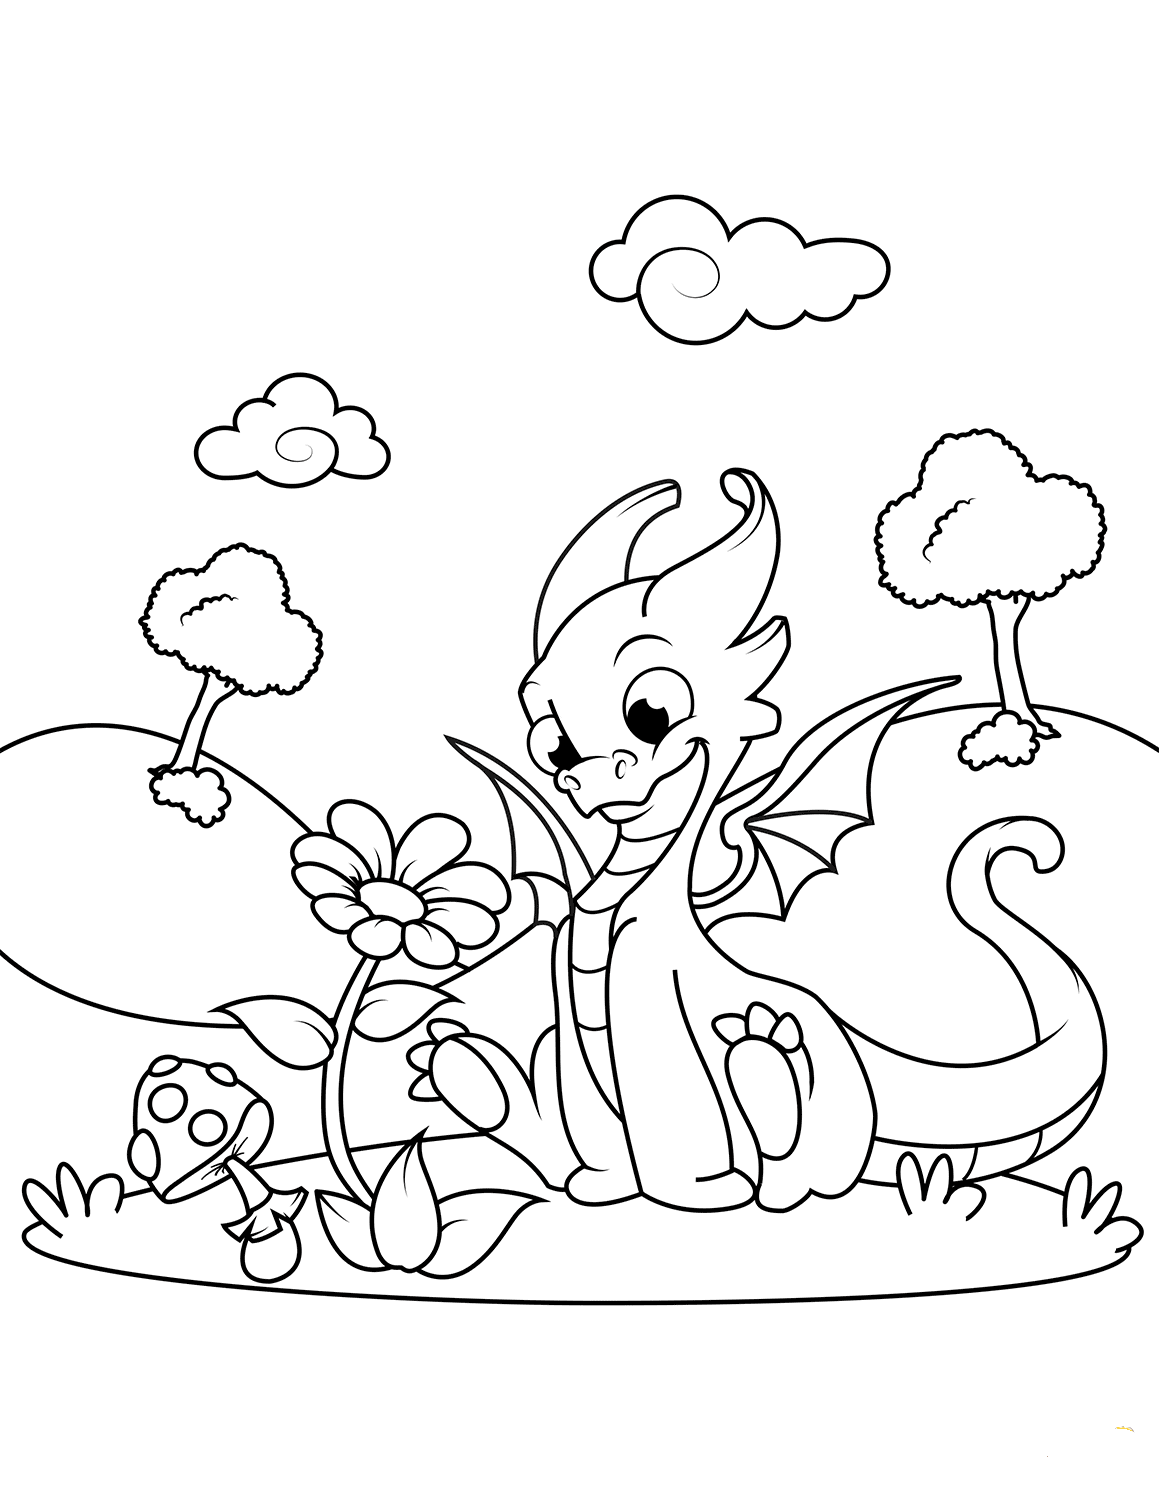 Dragon And Flower Coloring Page